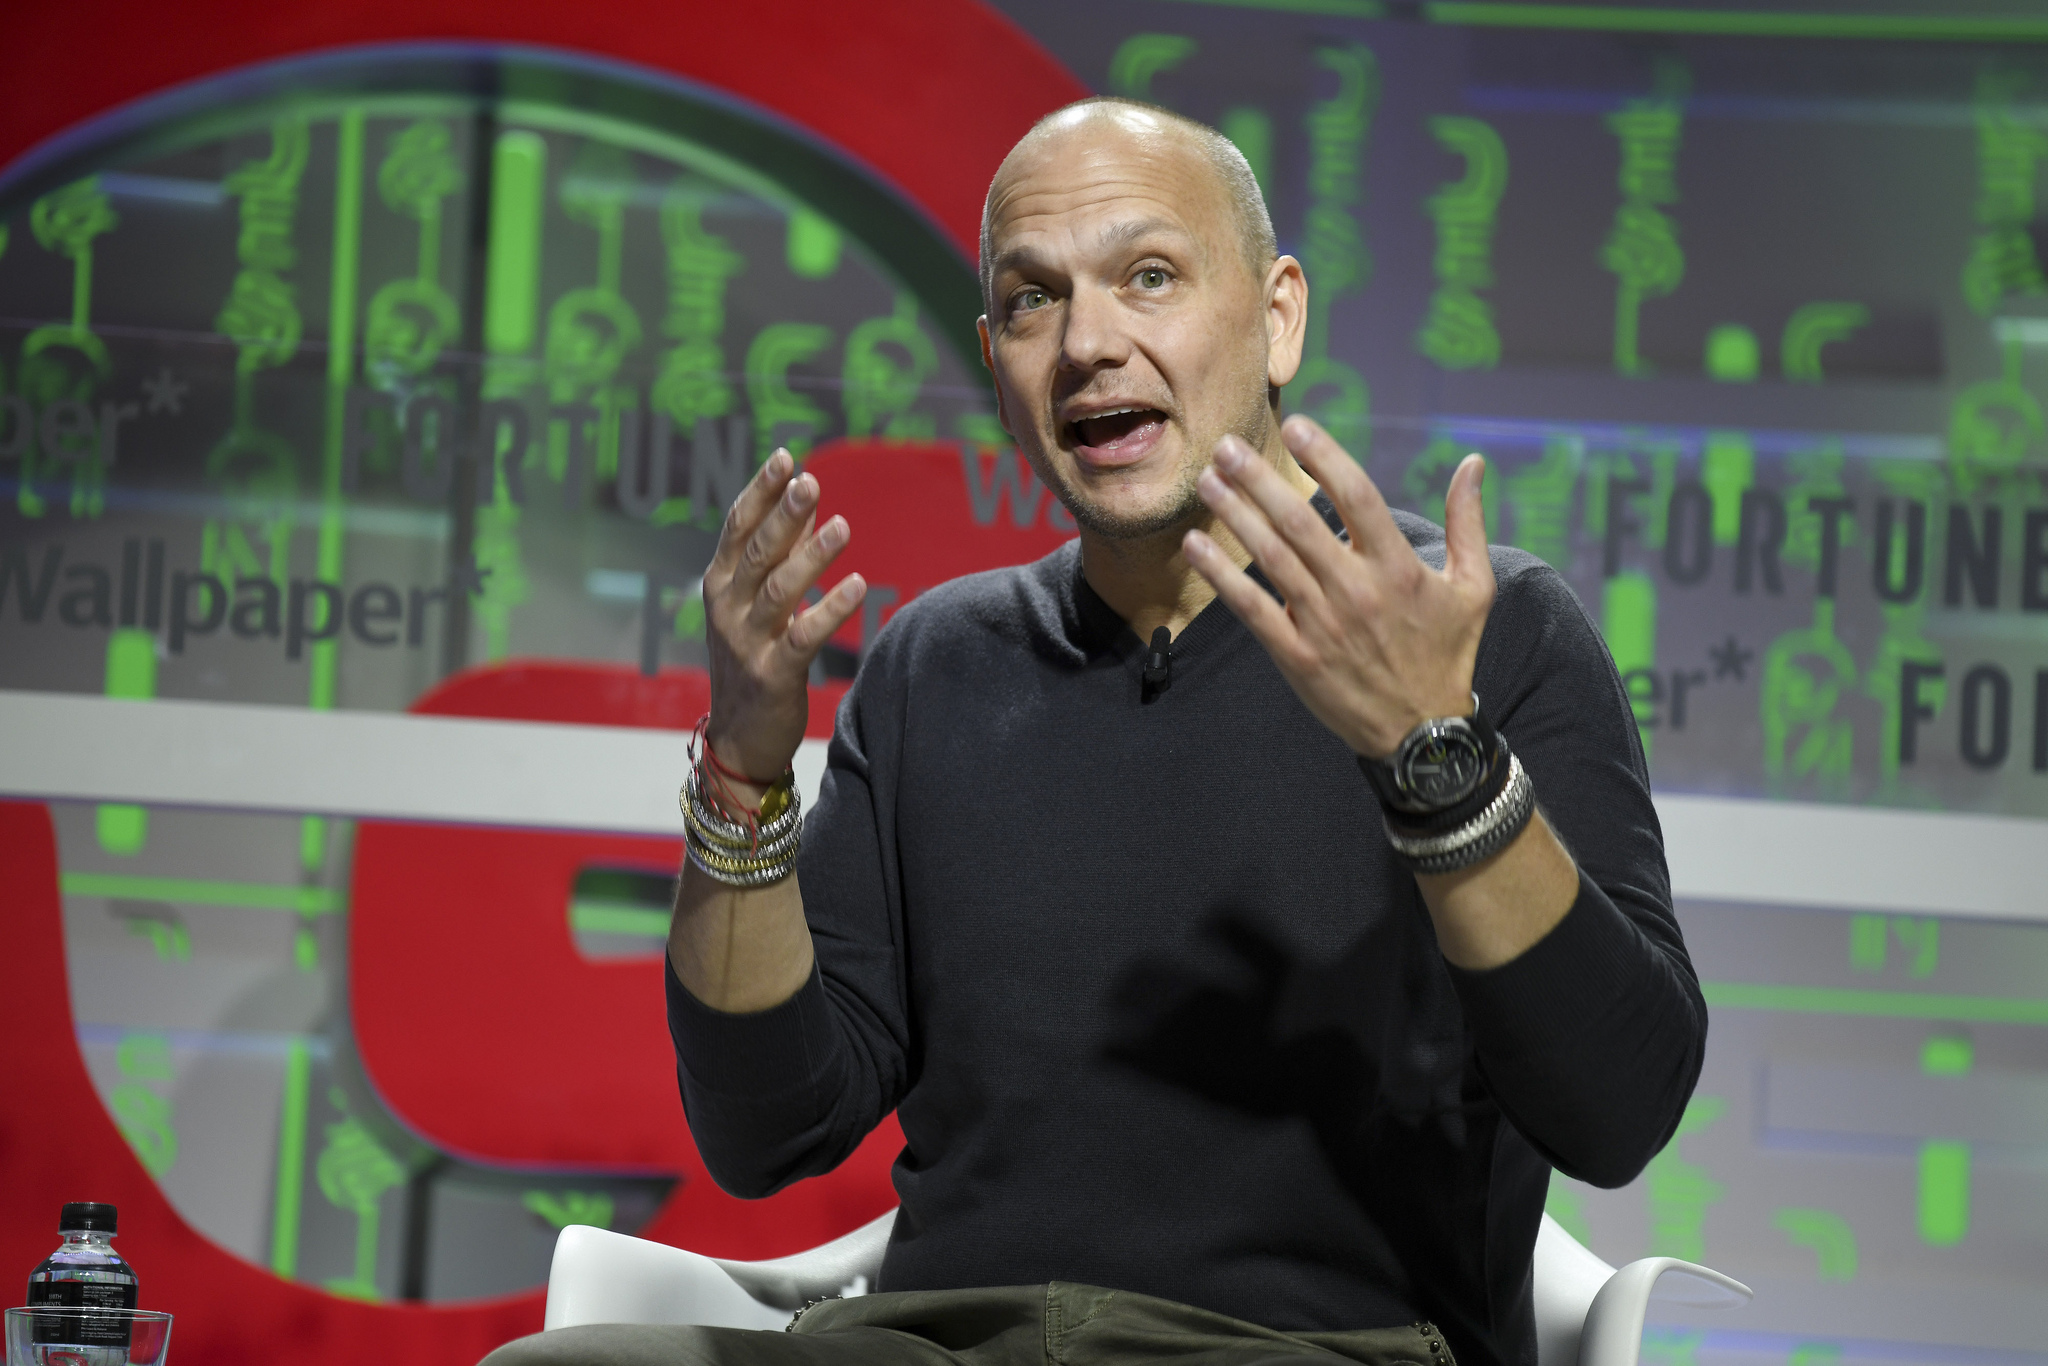 Future Shape principal Tony Fadell speaking at the 2019 Fortune Brainstorm Design conference in Singapore.